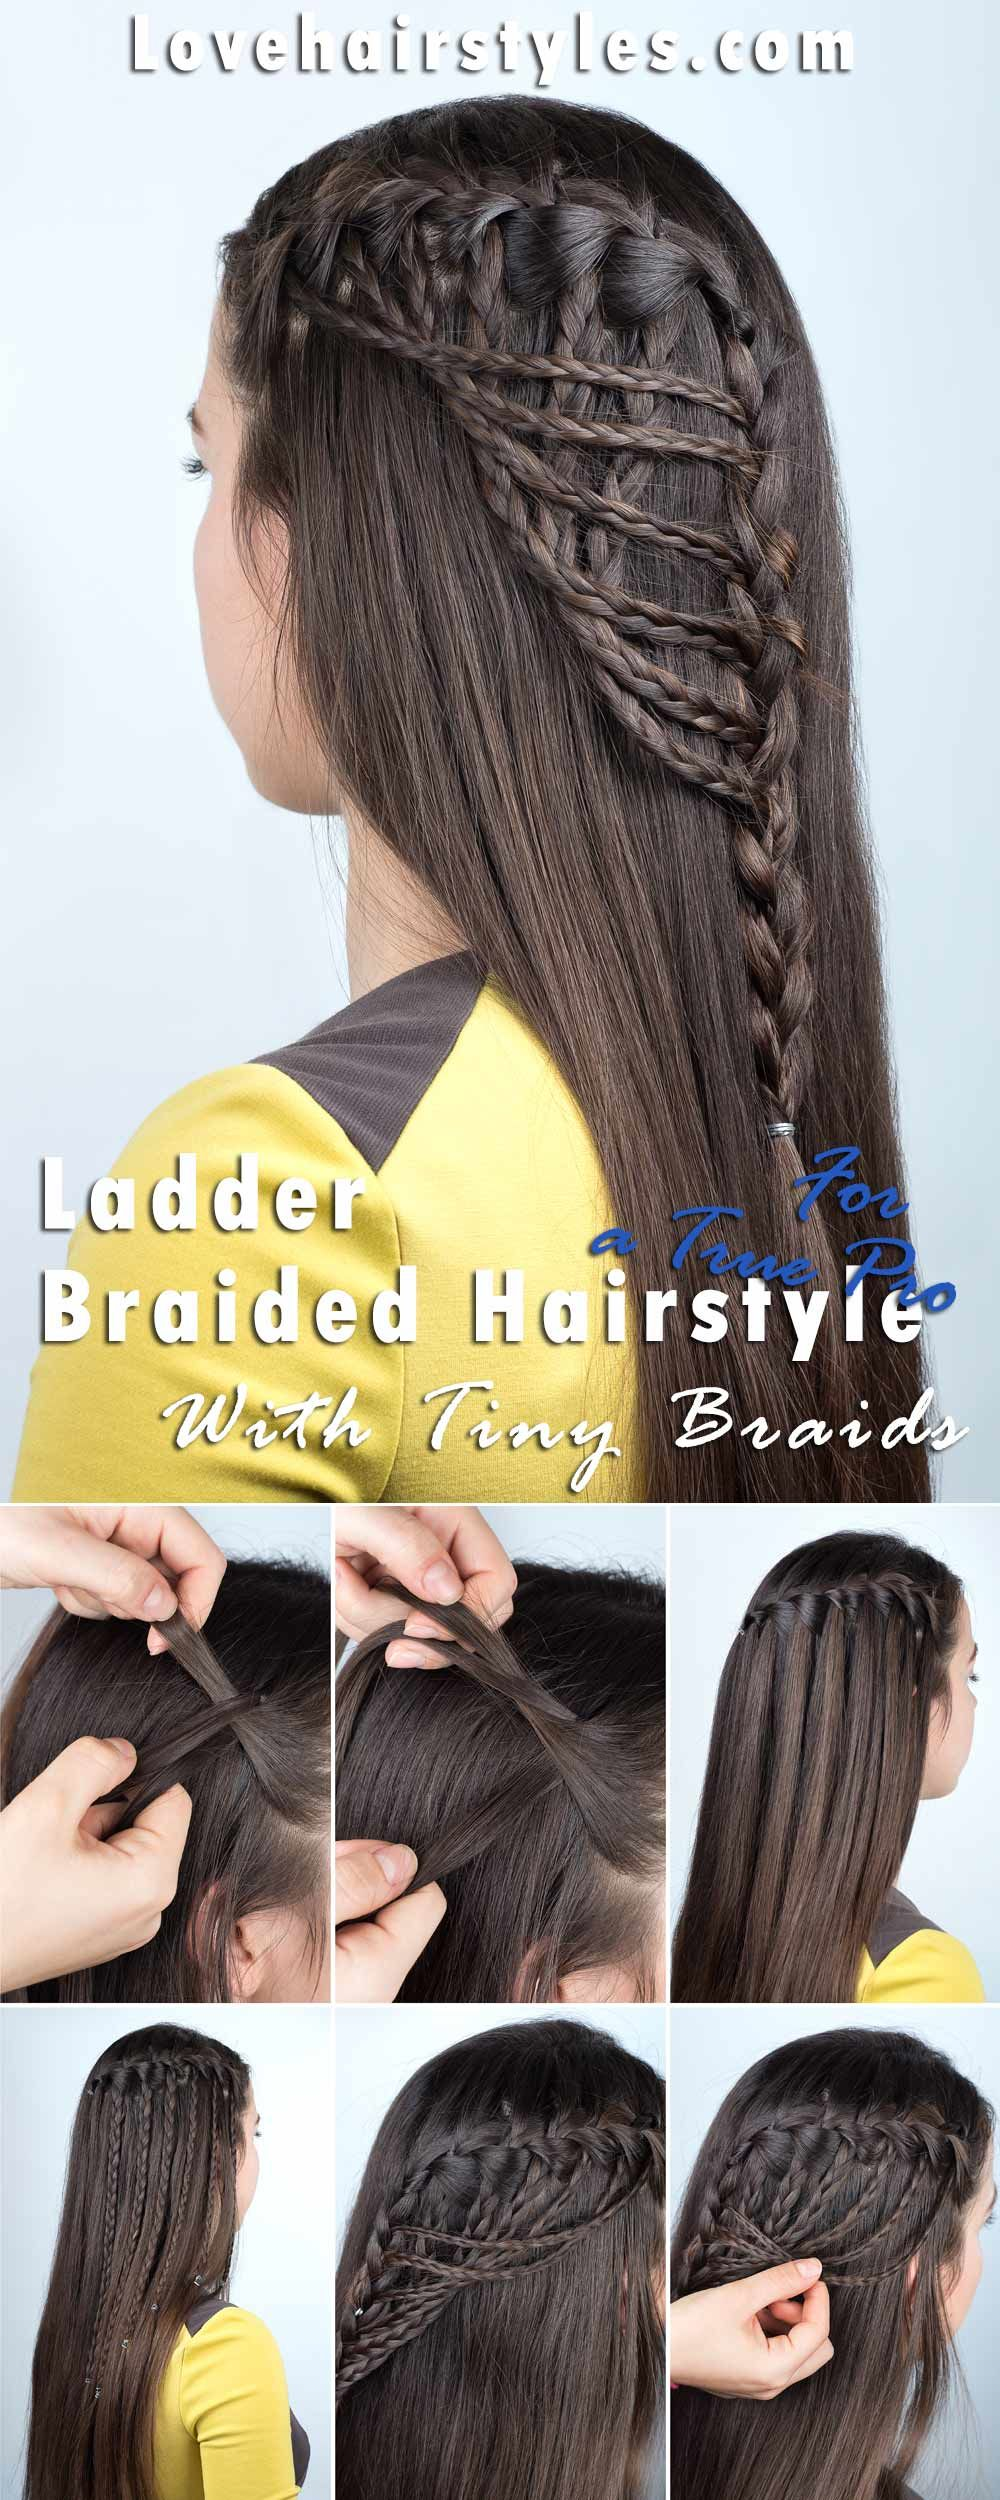 Ladder Braided Hairstyle With Tiny Braids For A True Pro